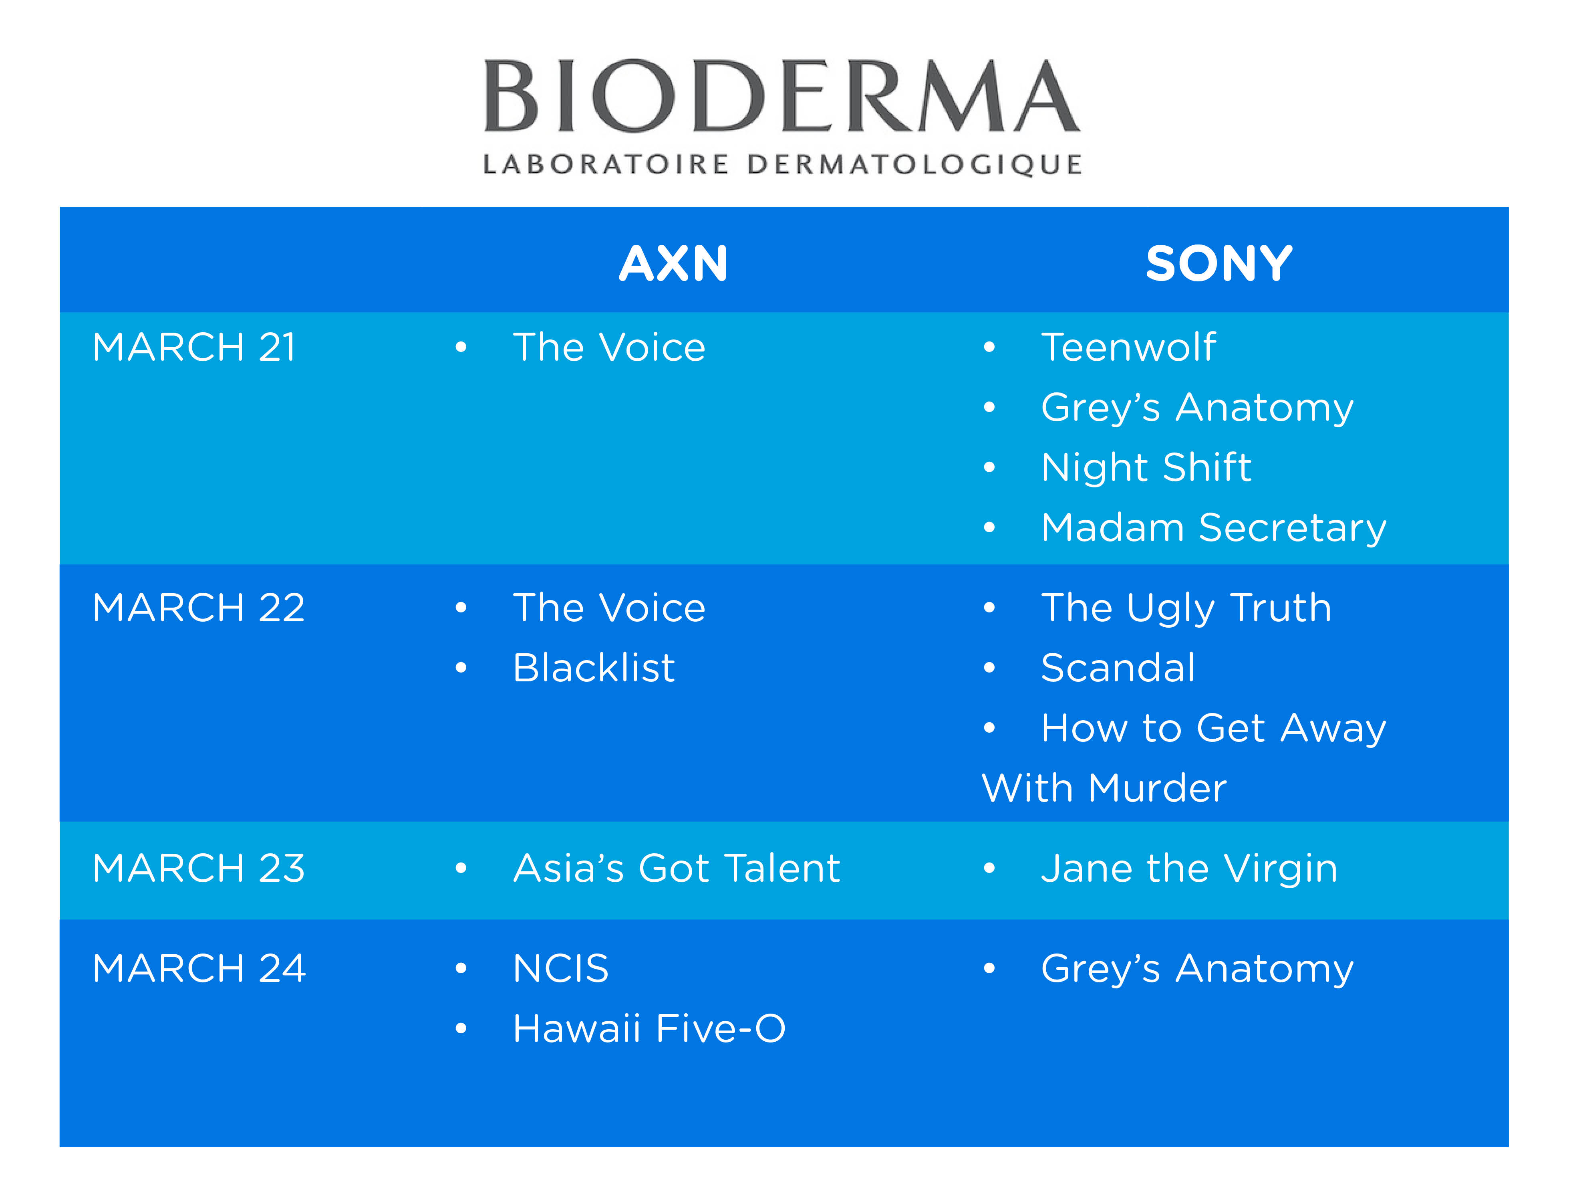 BIODERMA ON TV!